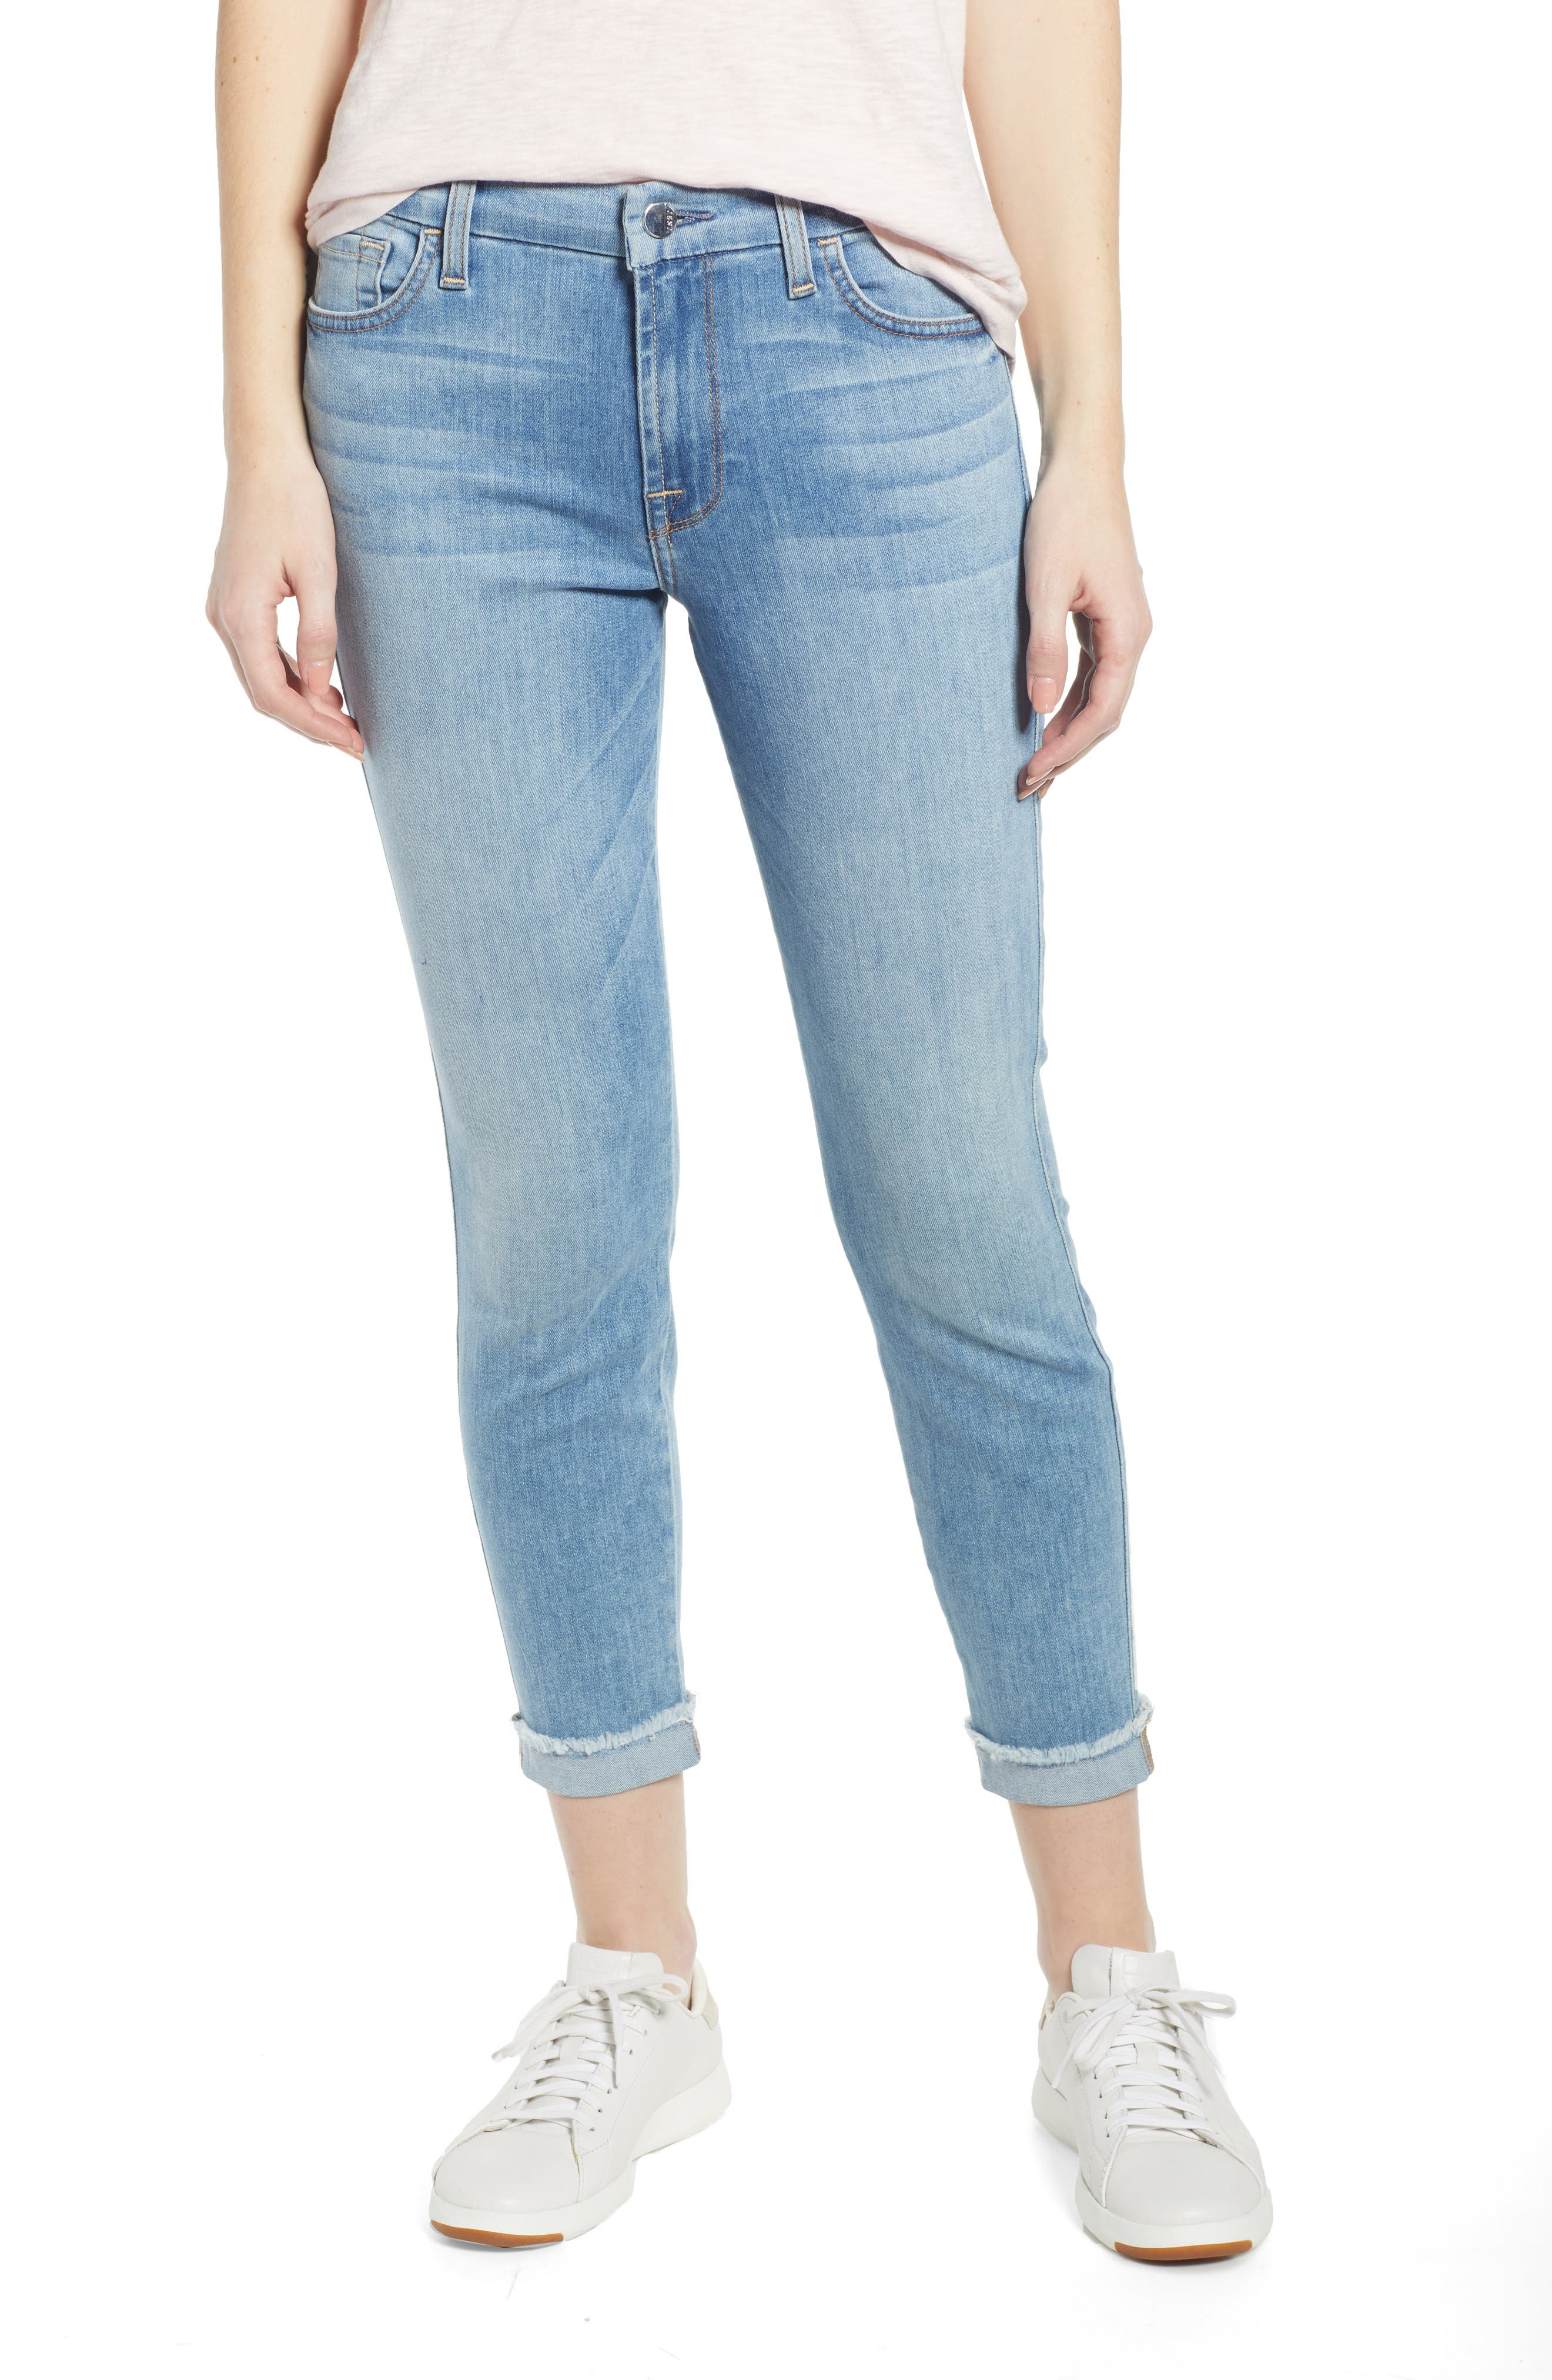 JEN7 BY 7 FOR ALL MANKIND, Cuffed Crop Skinny Jeans, Main thumbnail 1, color, LA QUINTA